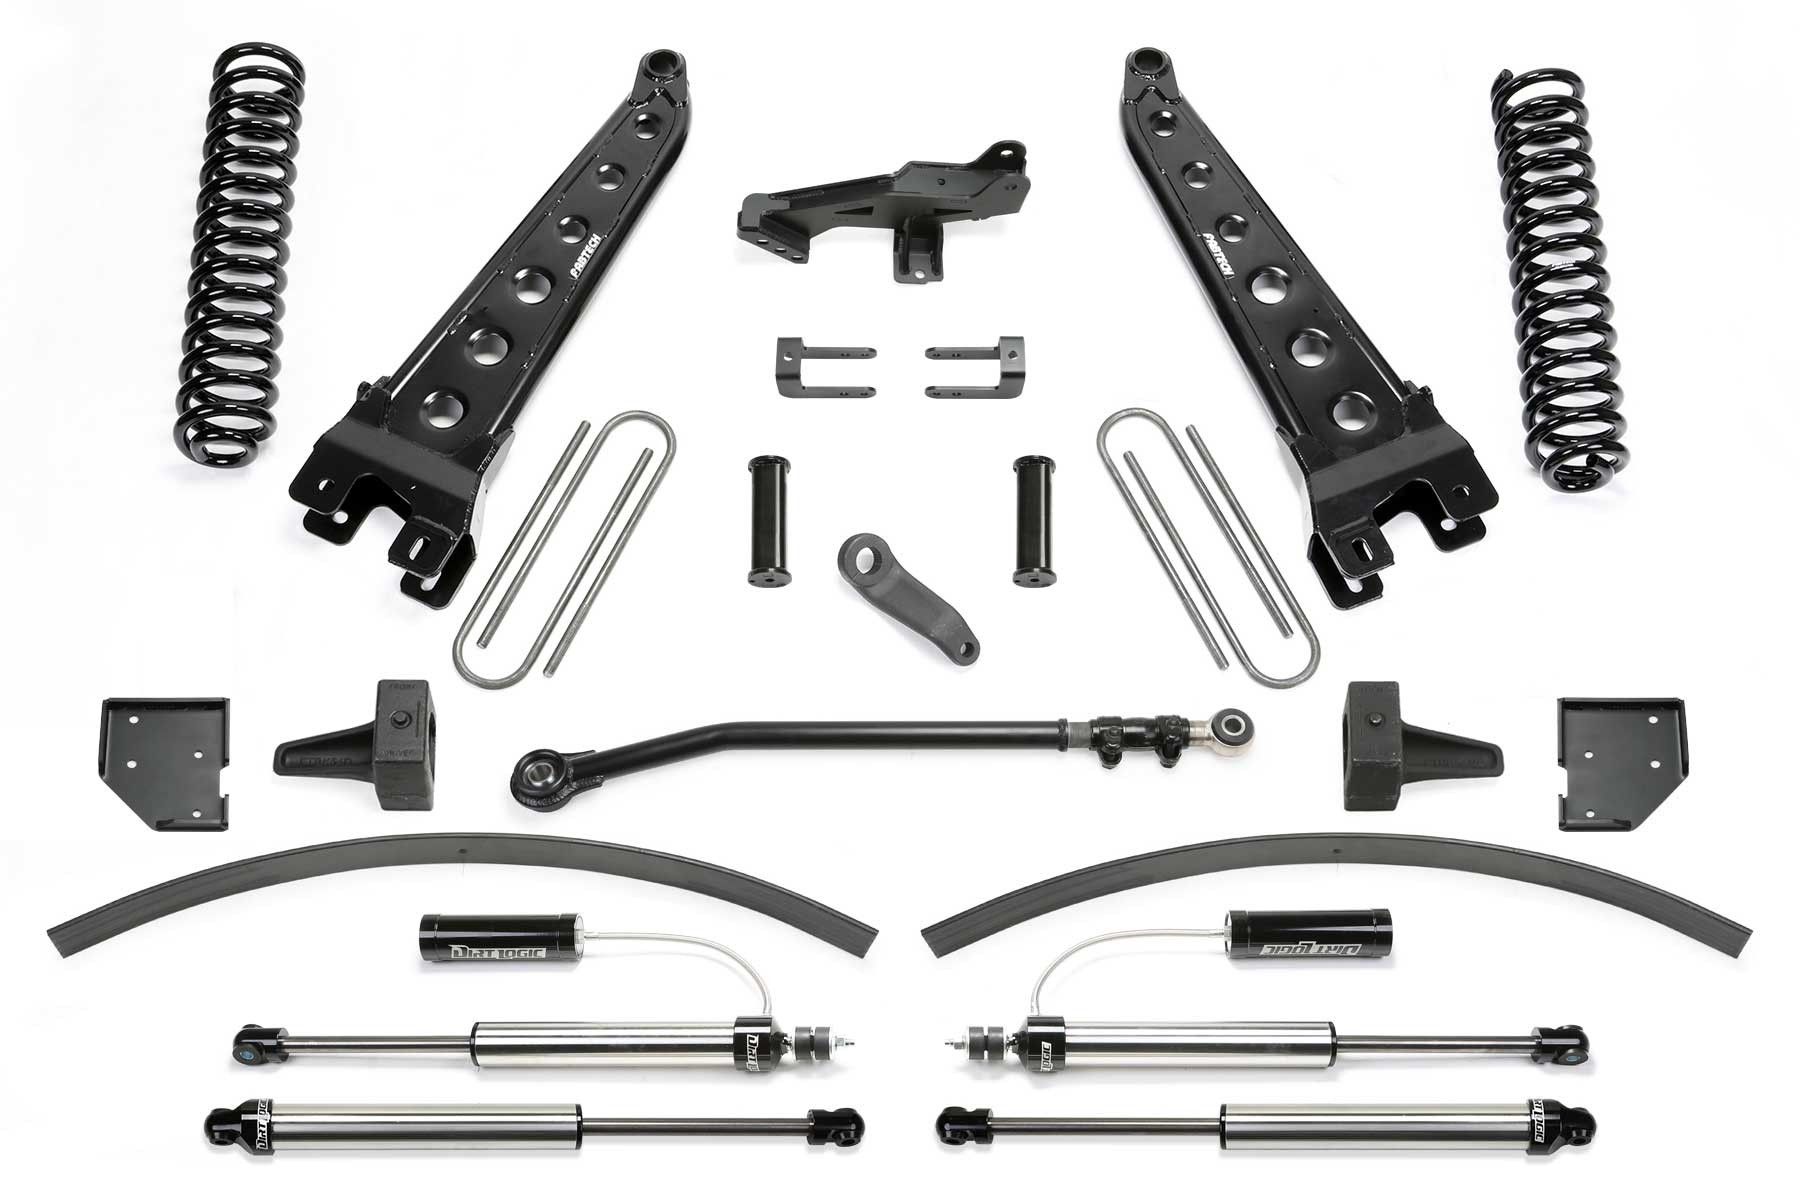 FABTECH 2017-18 Ford F250/ F350 4WD- 8″ RADIUS ARM SYSTEM W/ FRONT DIRT LOGIC 2.25 RESI SHOCKS & REAR DIRT LOGIC 2.25 SHOCKS